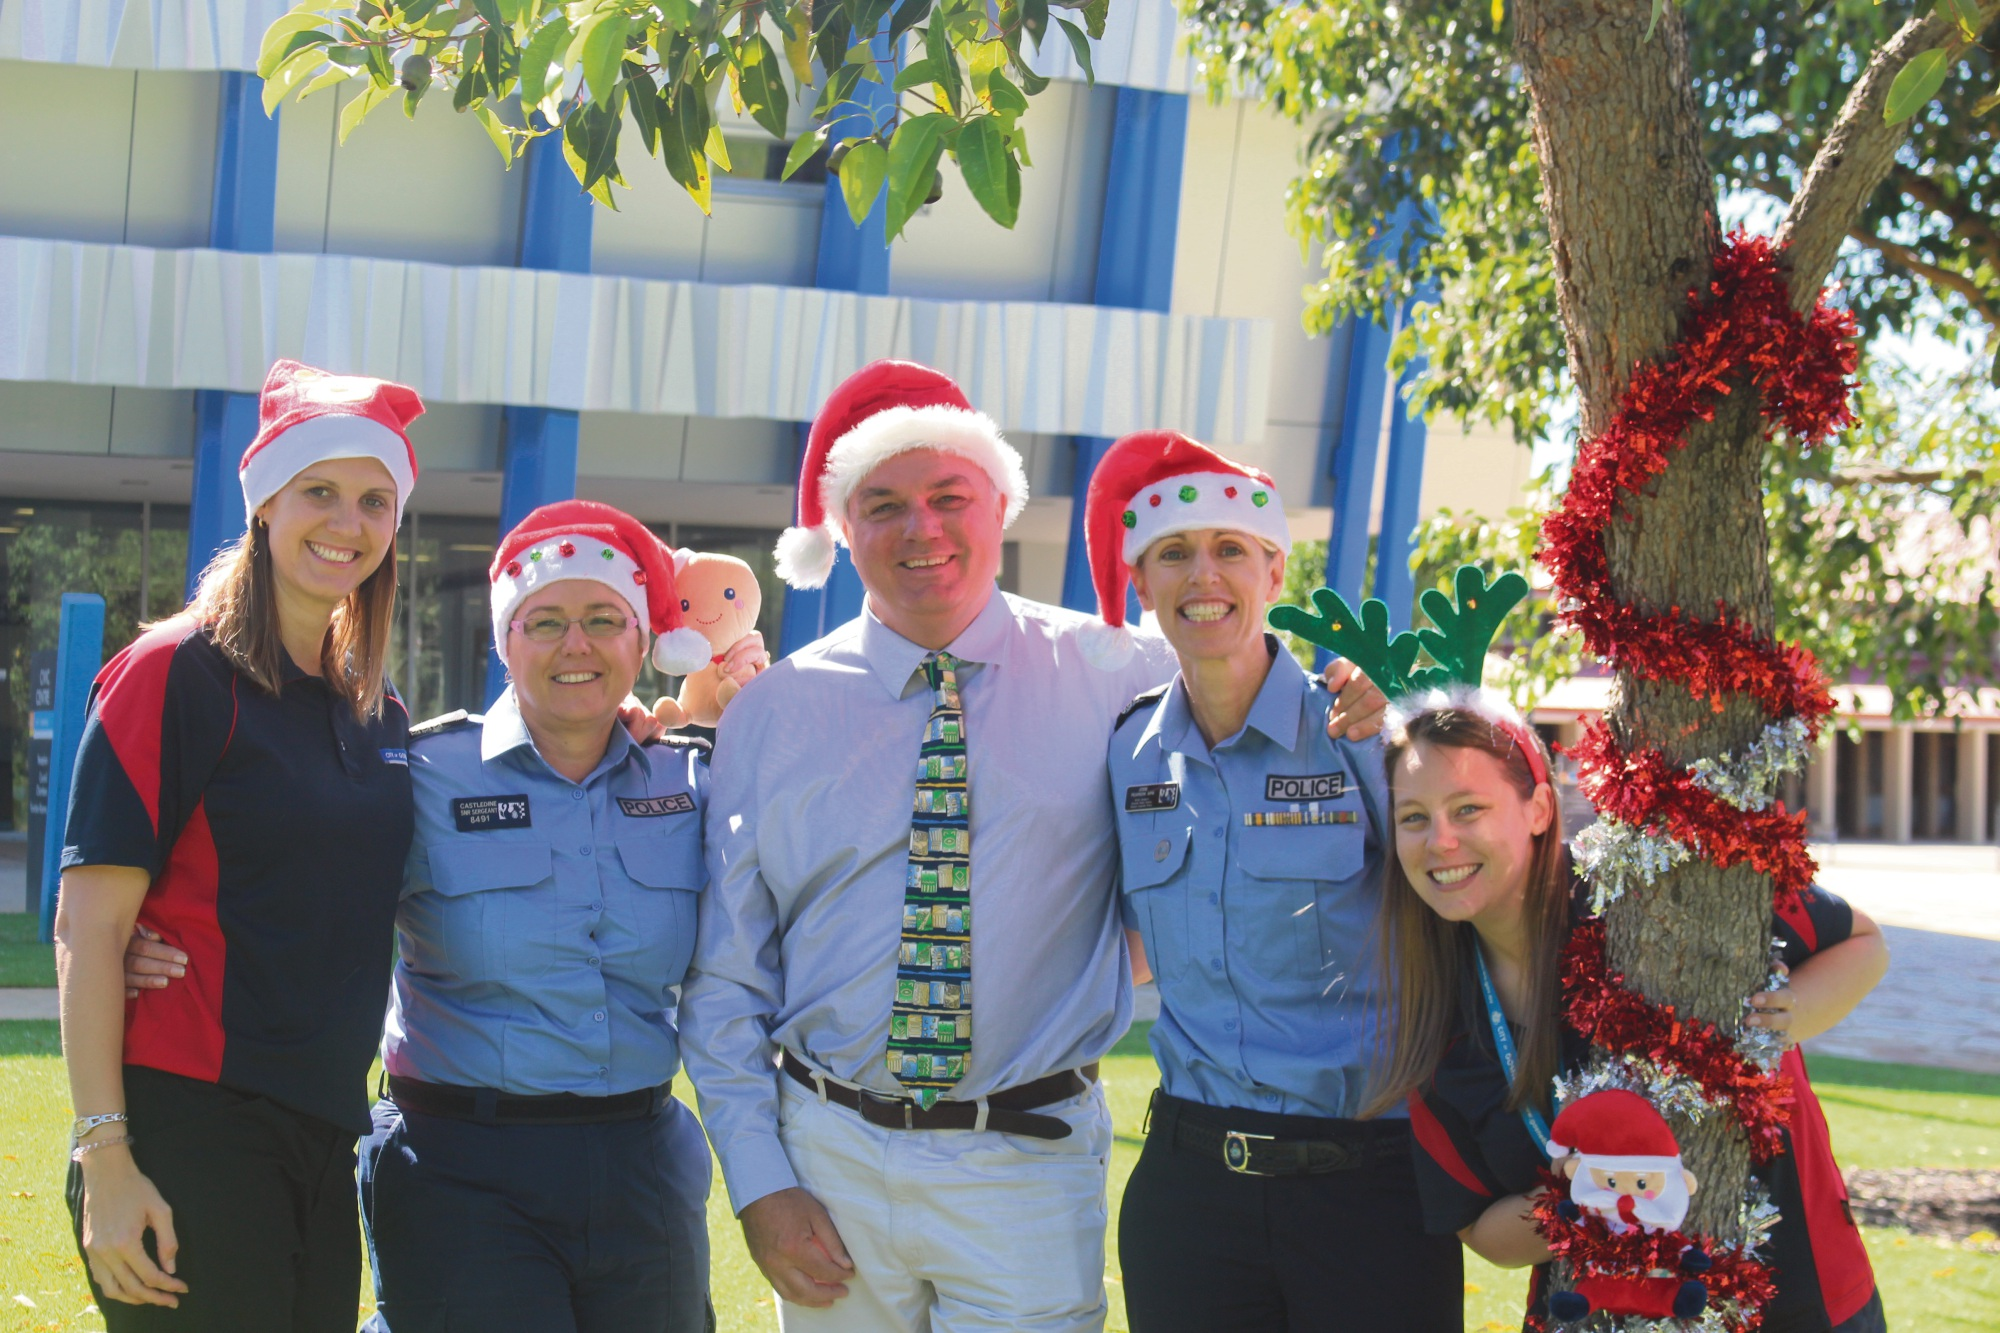 (L-R) Gosnells community safety officer Janelle Patterson, Canning Vale police officer in charge Shandell Castledine, Gosnells mayor Glenn Dewhurst, Gosnells police office in charge Jodie Pearson and Gosnells project officer of community development and safety Sam Wenban.